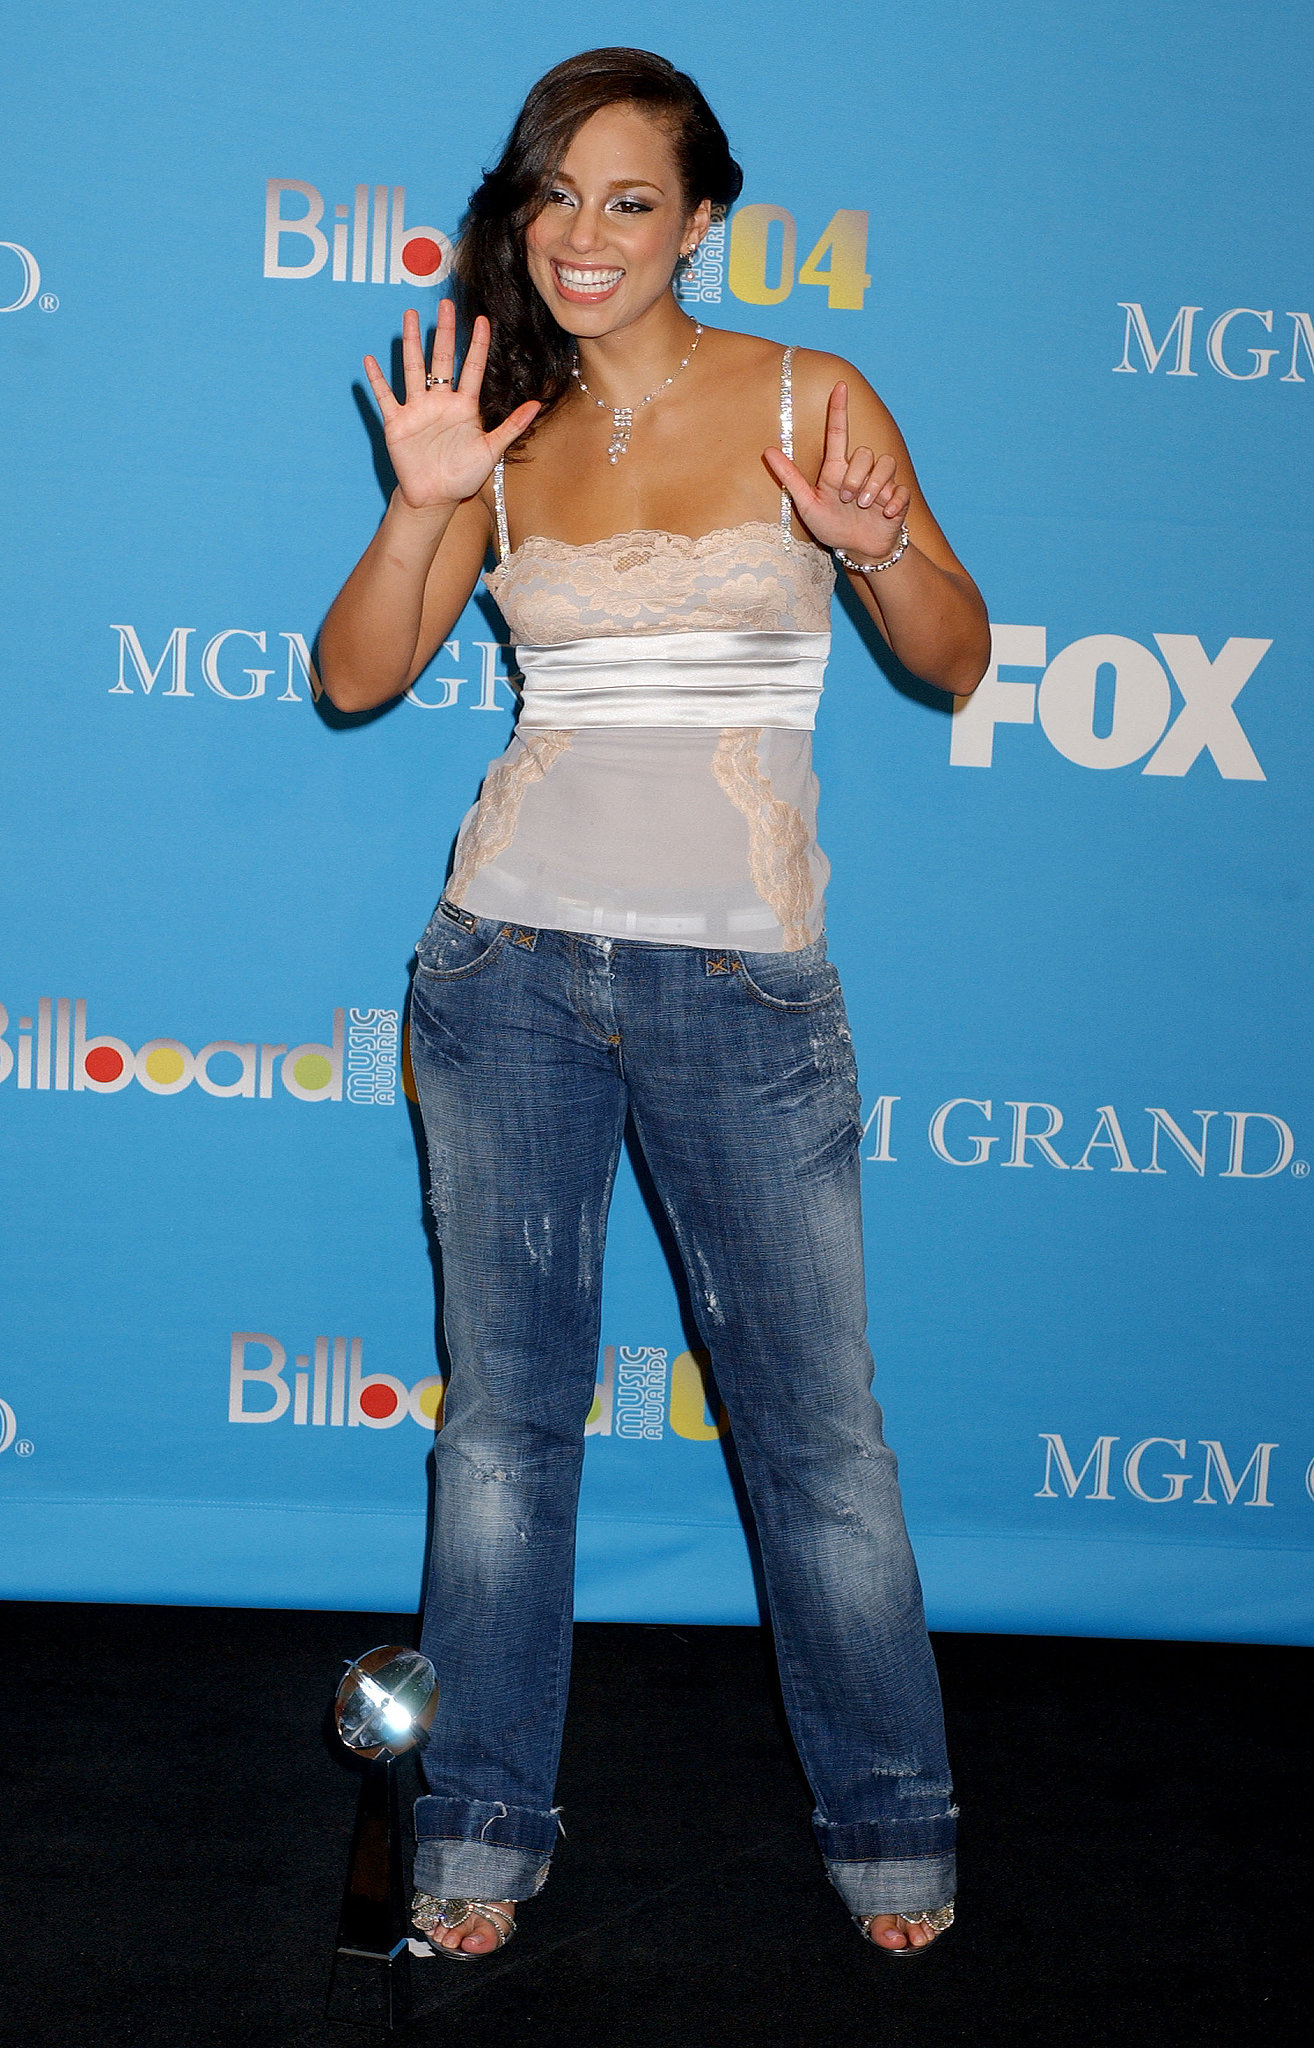 Alicia Keys got excited about the seven awards she picked up in December 2004.